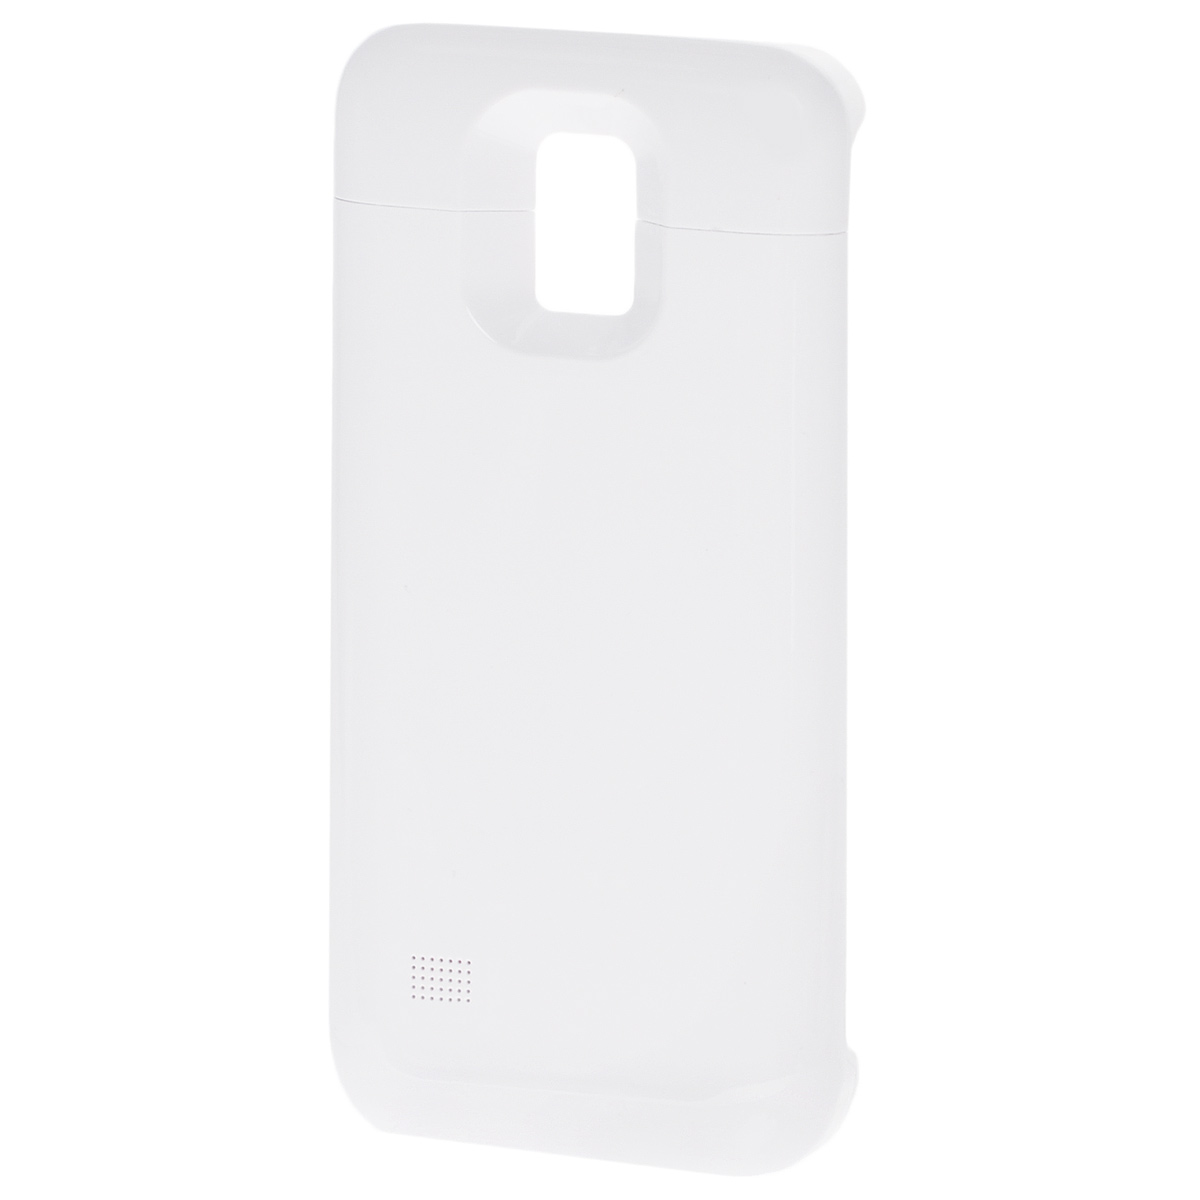 EXEQ HelpinG-SC09 чехол-аккумулятор для Samsung Galaxy S5 mini, White (3300 мАч, клип-кейс)